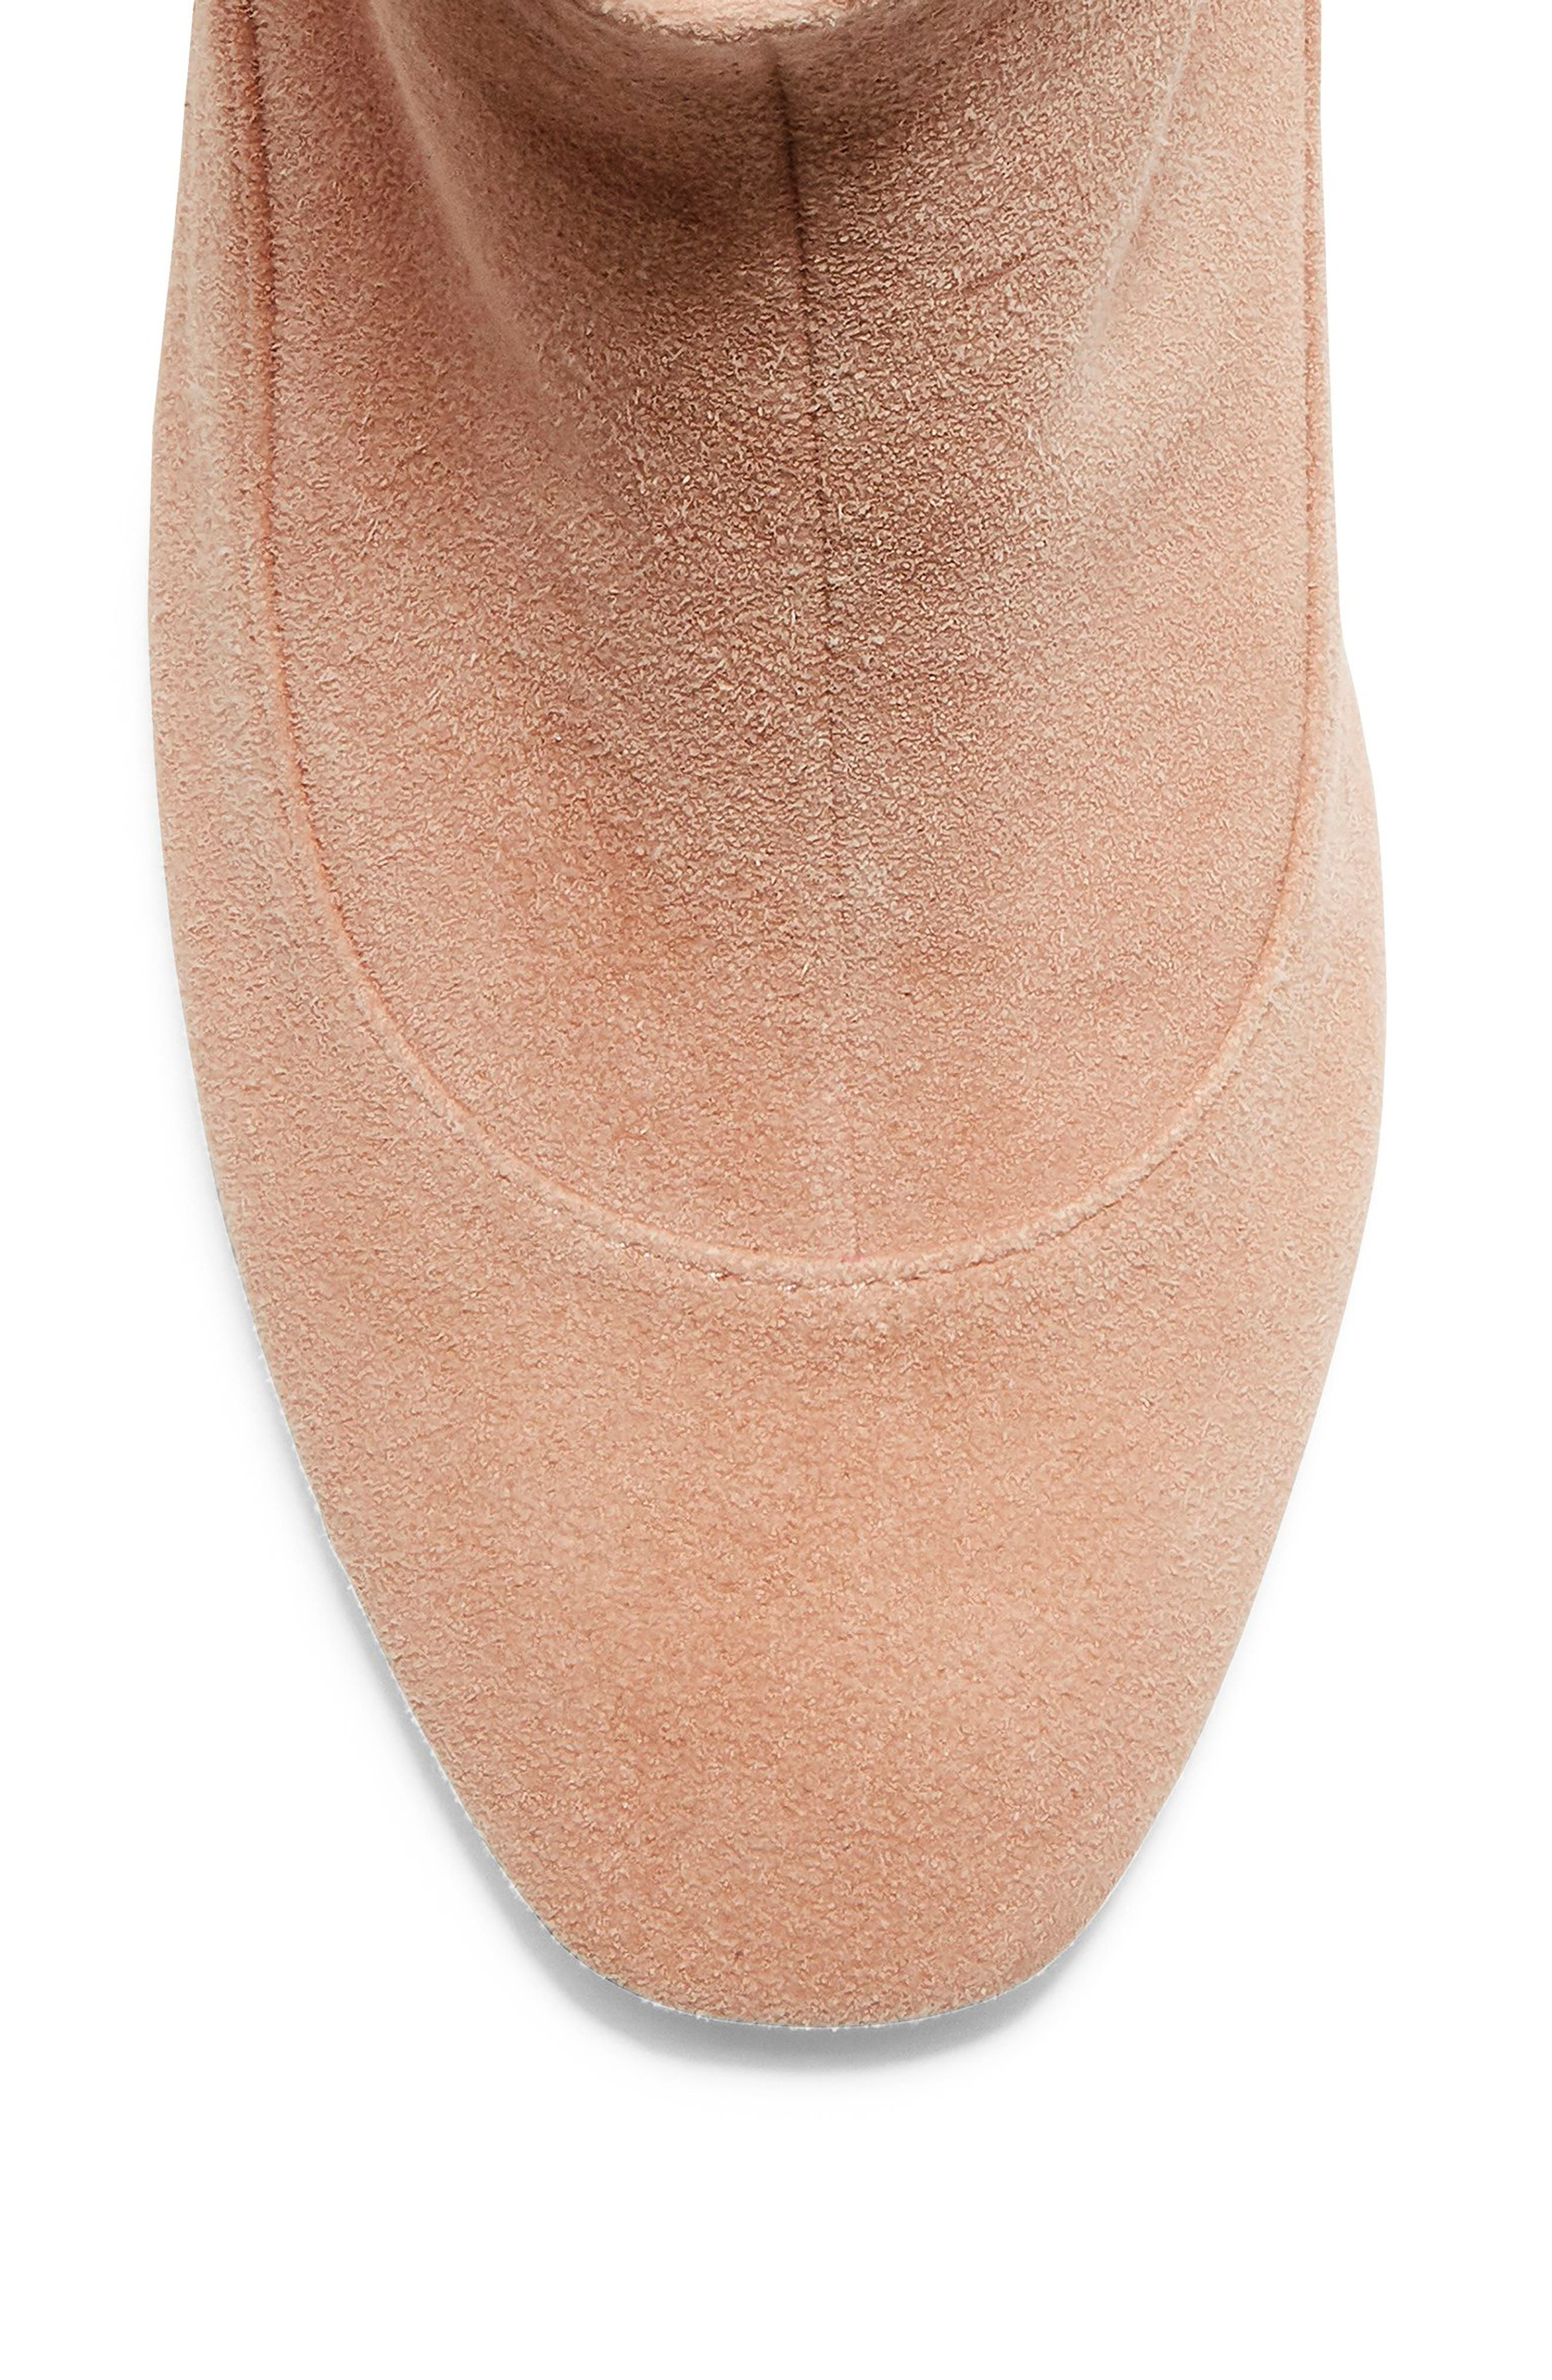 COLE HAAN, Laree Stretch Bootie, Alternate thumbnail 7, color, 200